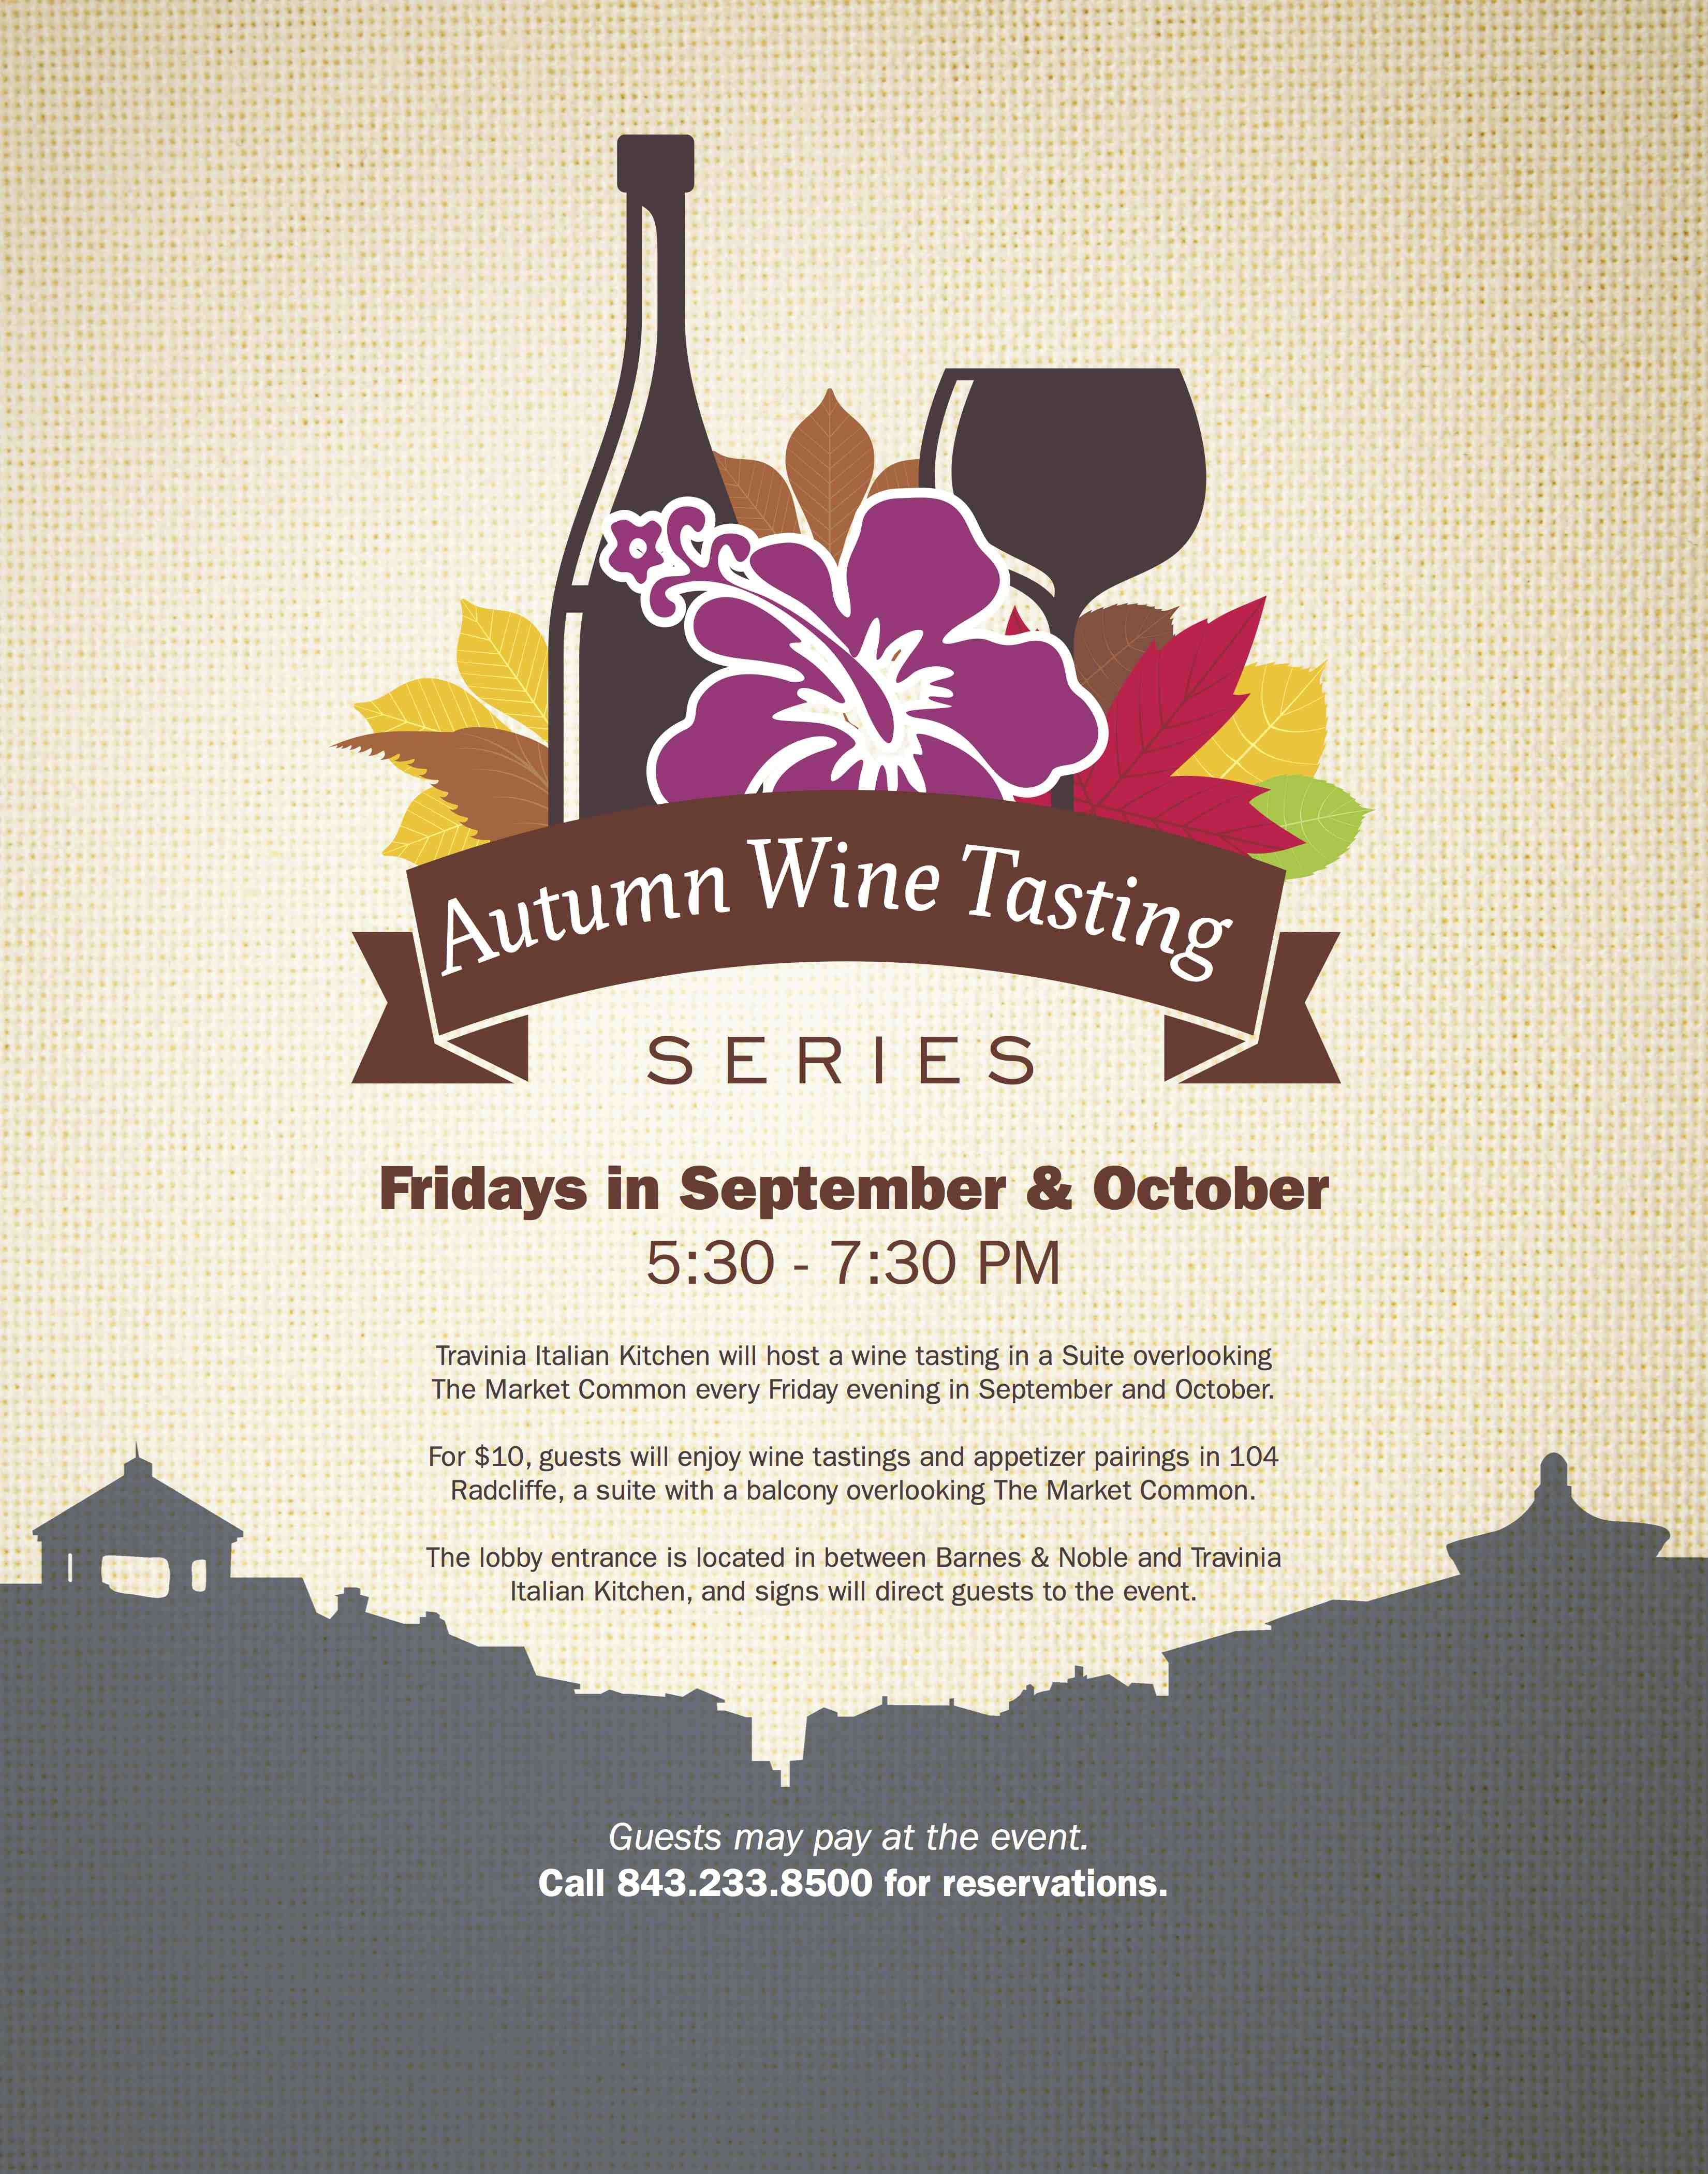 Friday Night Wine Tasting Series - Myrtle Beach on the Cheap